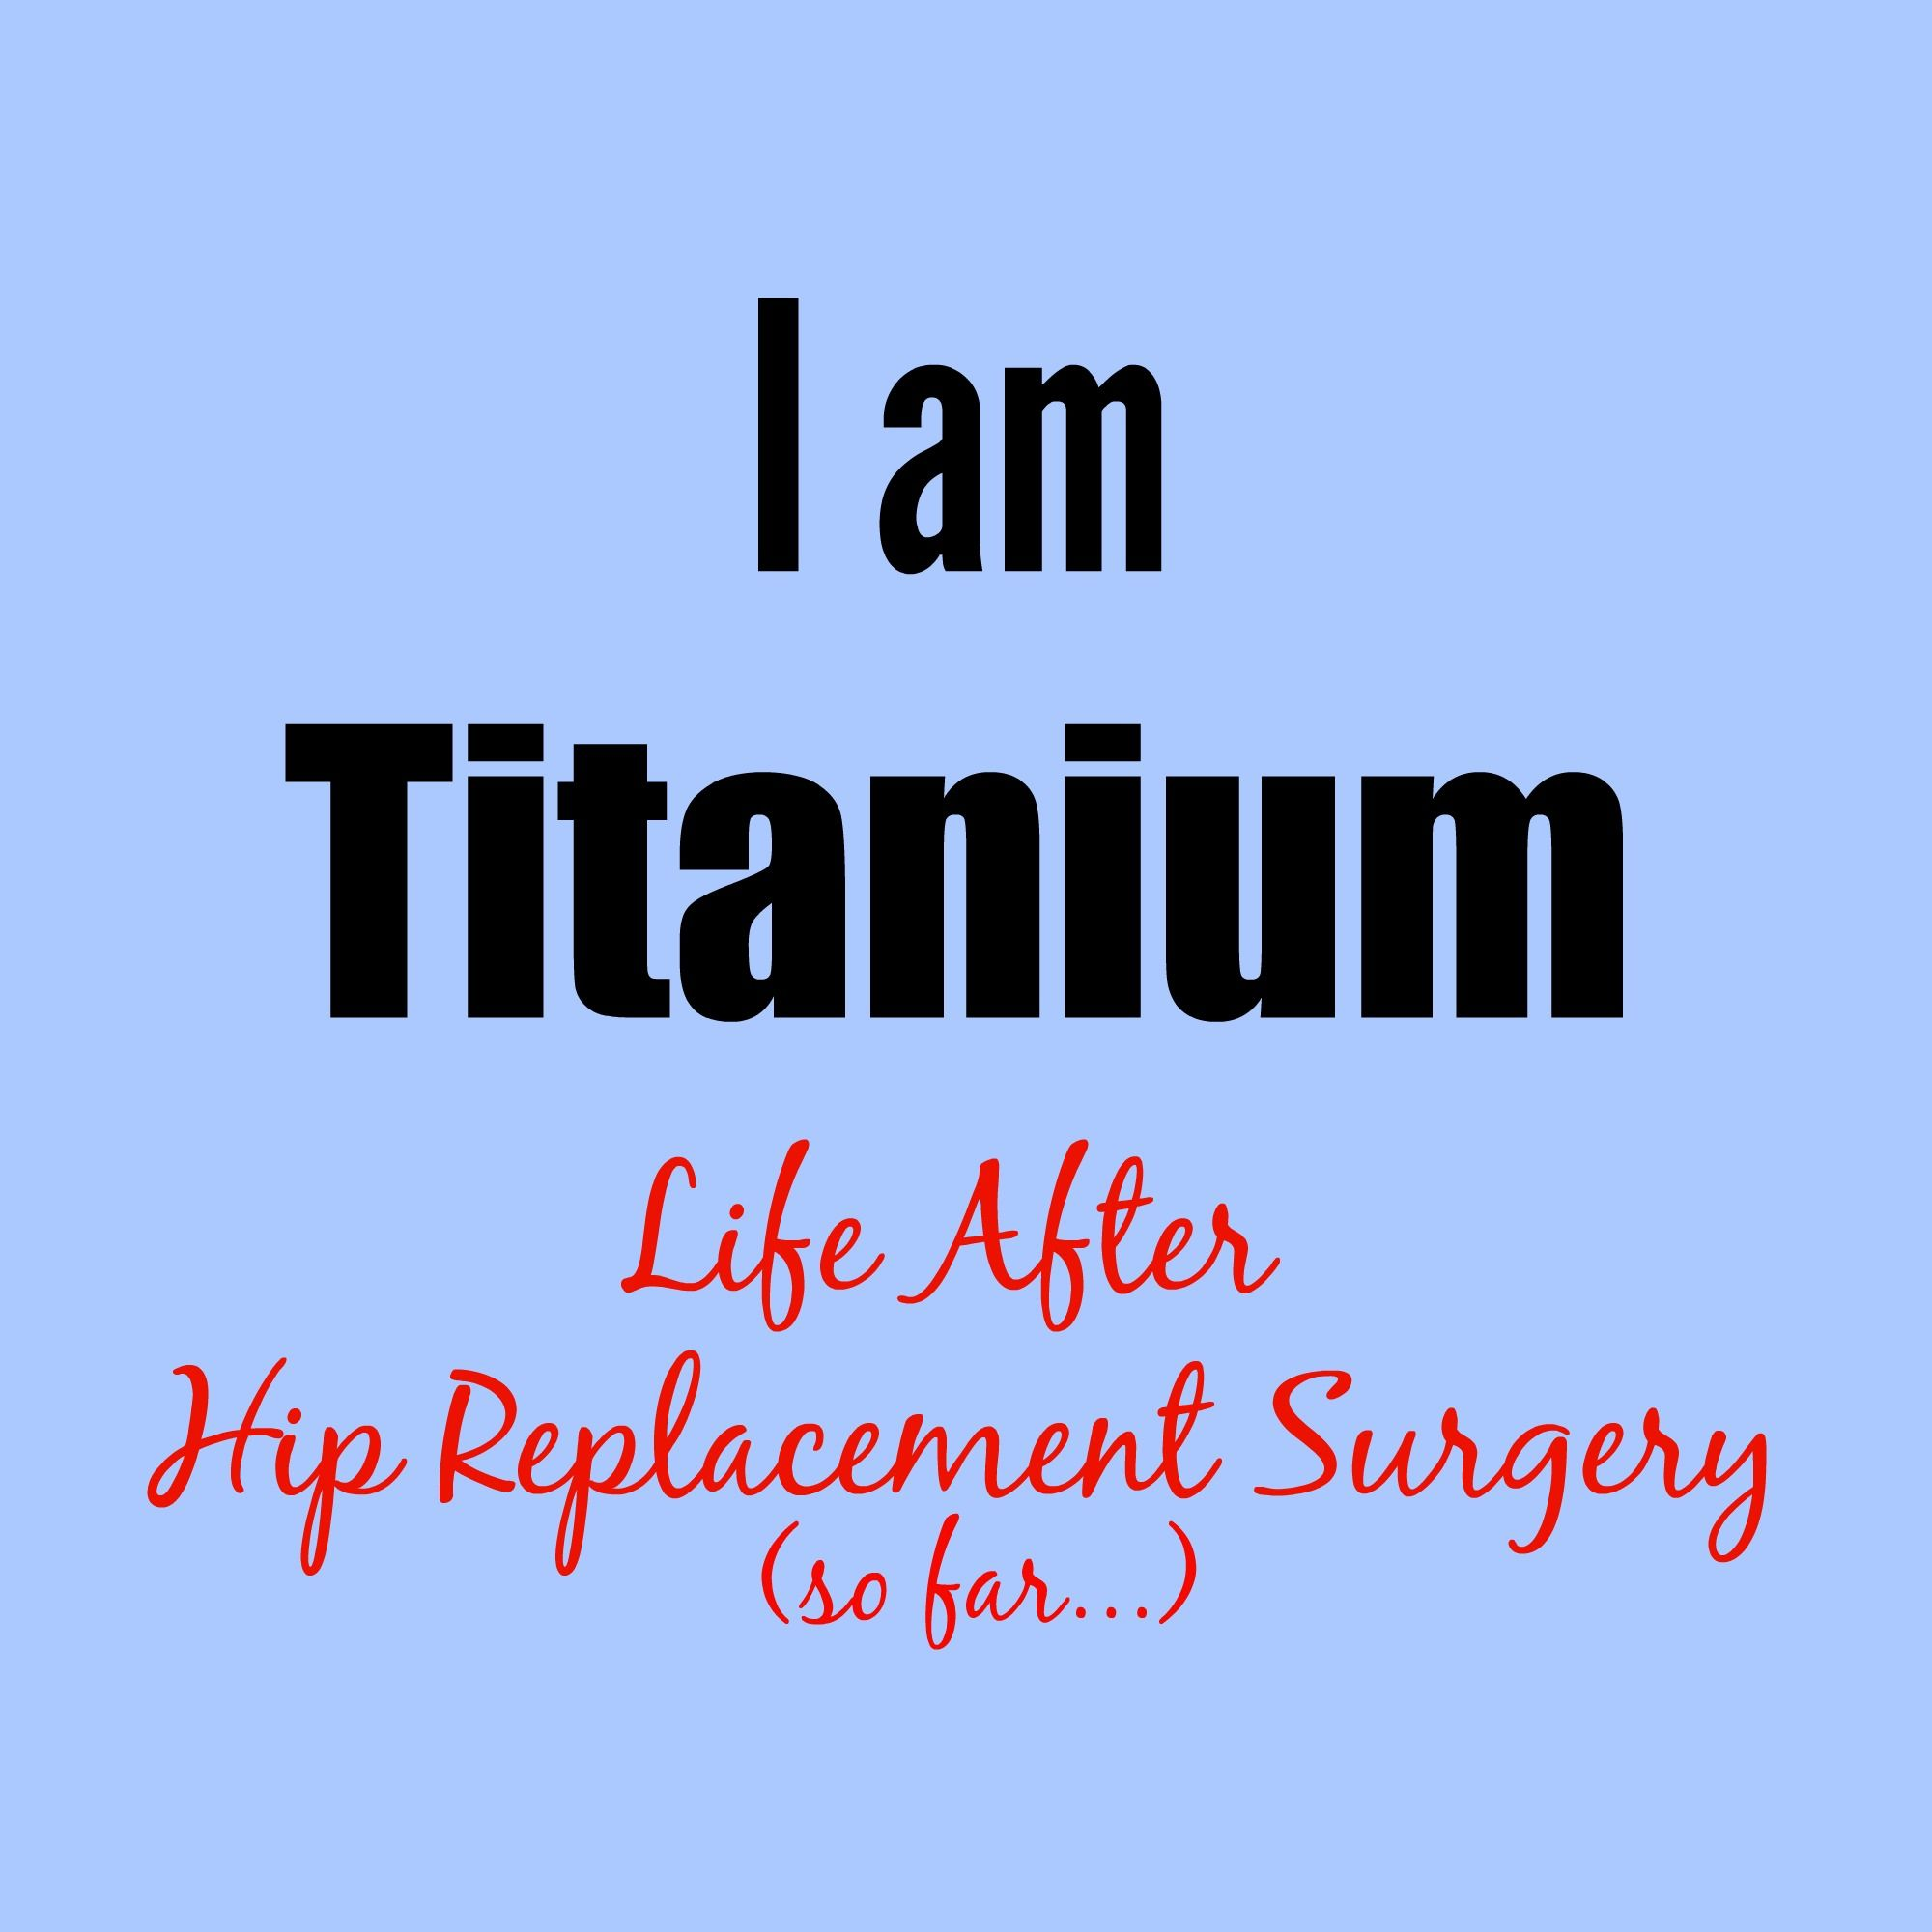 Interesting account of a person after hip replacement surgery ...